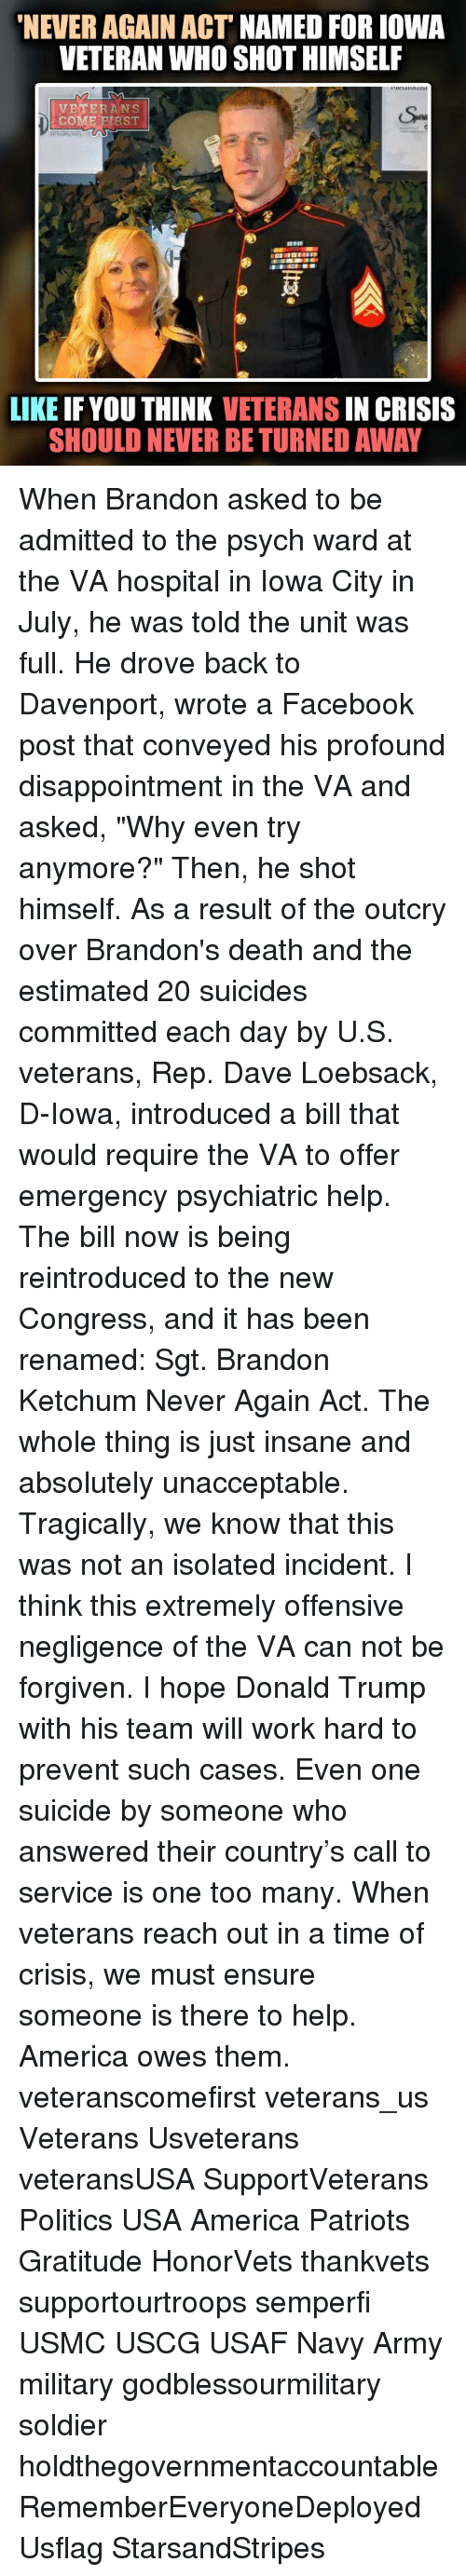 "Unaccept: NEVER AGAIN ACT  NAMED FOR IOWA  VETERAN WHO SHOT HIMSELF  VETERANS  DECOM  RST  LIKE IF YOU THINK  VETERANS  IN CRISIS  SHOULD NEVER BE TURNED AWAY When Brandon asked to be admitted to the psych ward at the VA hospital in Iowa City in July, he was told the unit was full. He drove back to Davenport, wrote a Facebook post that conveyed his profound disappointment in the VA and asked, ""Why even try anymore?"" Then, he shot himself. As a result of the outcry over Brandon's death and the estimated 20 suicides committed each day by U.S. veterans, Rep. Dave Loebsack, D-Iowa, introduced a bill that would require the VA to offer emergency psychiatric help. The bill now is being reintroduced to the new Congress, and it has been renamed: Sgt. Brandon Ketchum Never Again Act. The whole thing is just insane and absolutely unacceptable. Tragically, we know that this was not an isolated incident. I think this extremely offensive negligence of the VA can not be forgiven. I hope Donald Trump with his team will work hard to prevent such cases. Even one suicide by someone who answered their country's call to service is one too many. When veterans reach out in a time of crisis, we must ensure someone is there to help. America owes them. veteranscomefirst veterans_us Veterans Usveterans veteransUSA SupportVeterans Politics USA America Patriots Gratitude HonorVets thankvets supportourtroops semperfi USMC USCG USAF Navy Army military godblessourmilitary soldier holdthegovernmentaccountable RememberEveryoneDeployed Usflag StarsandStripes"